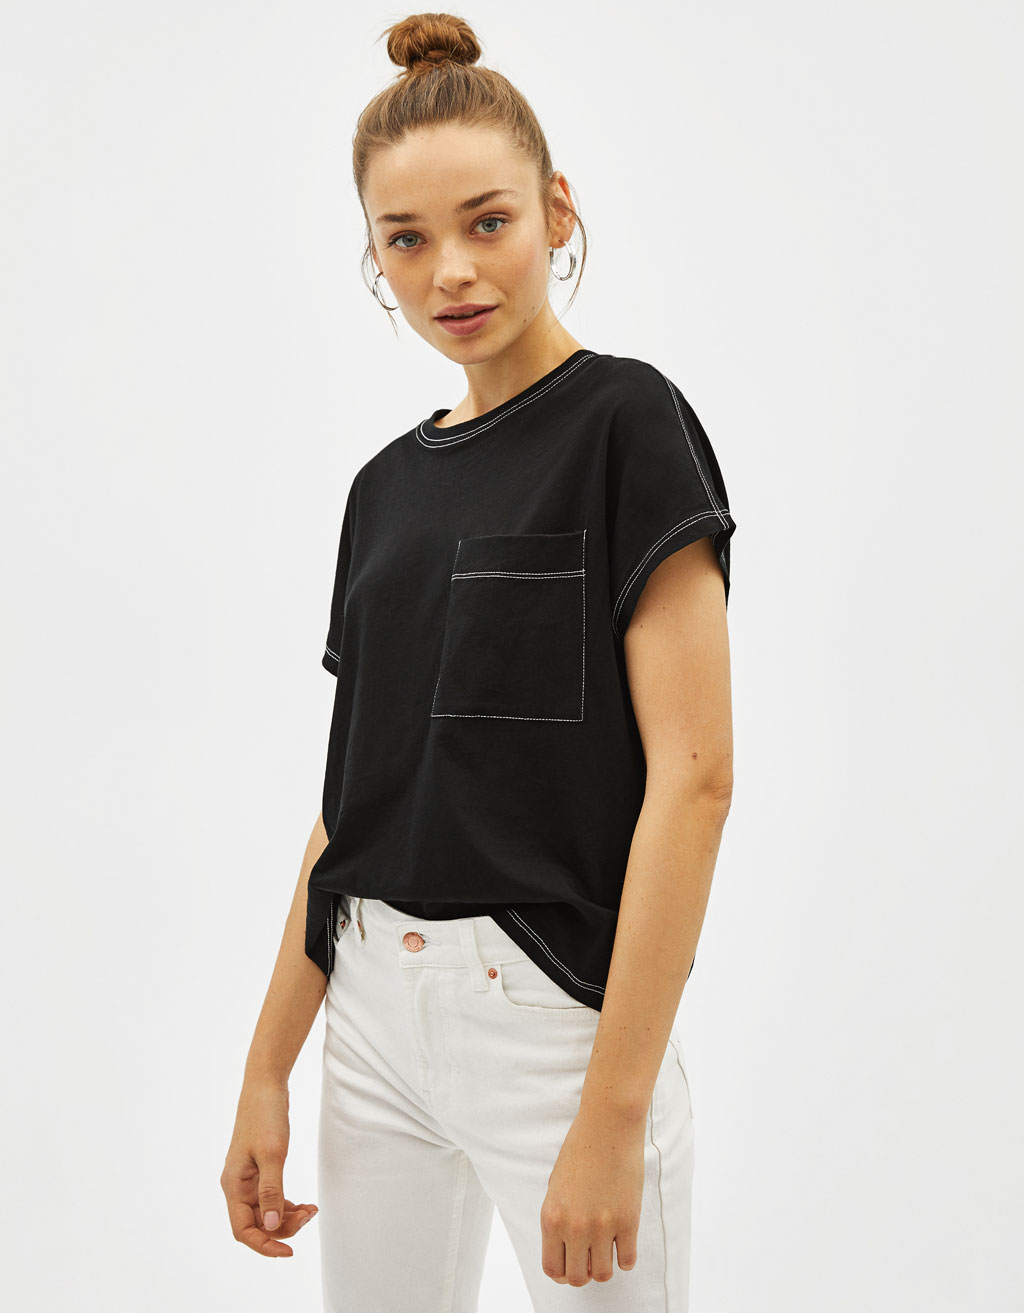 Join Life T-shirt with pocket and contrasting seams